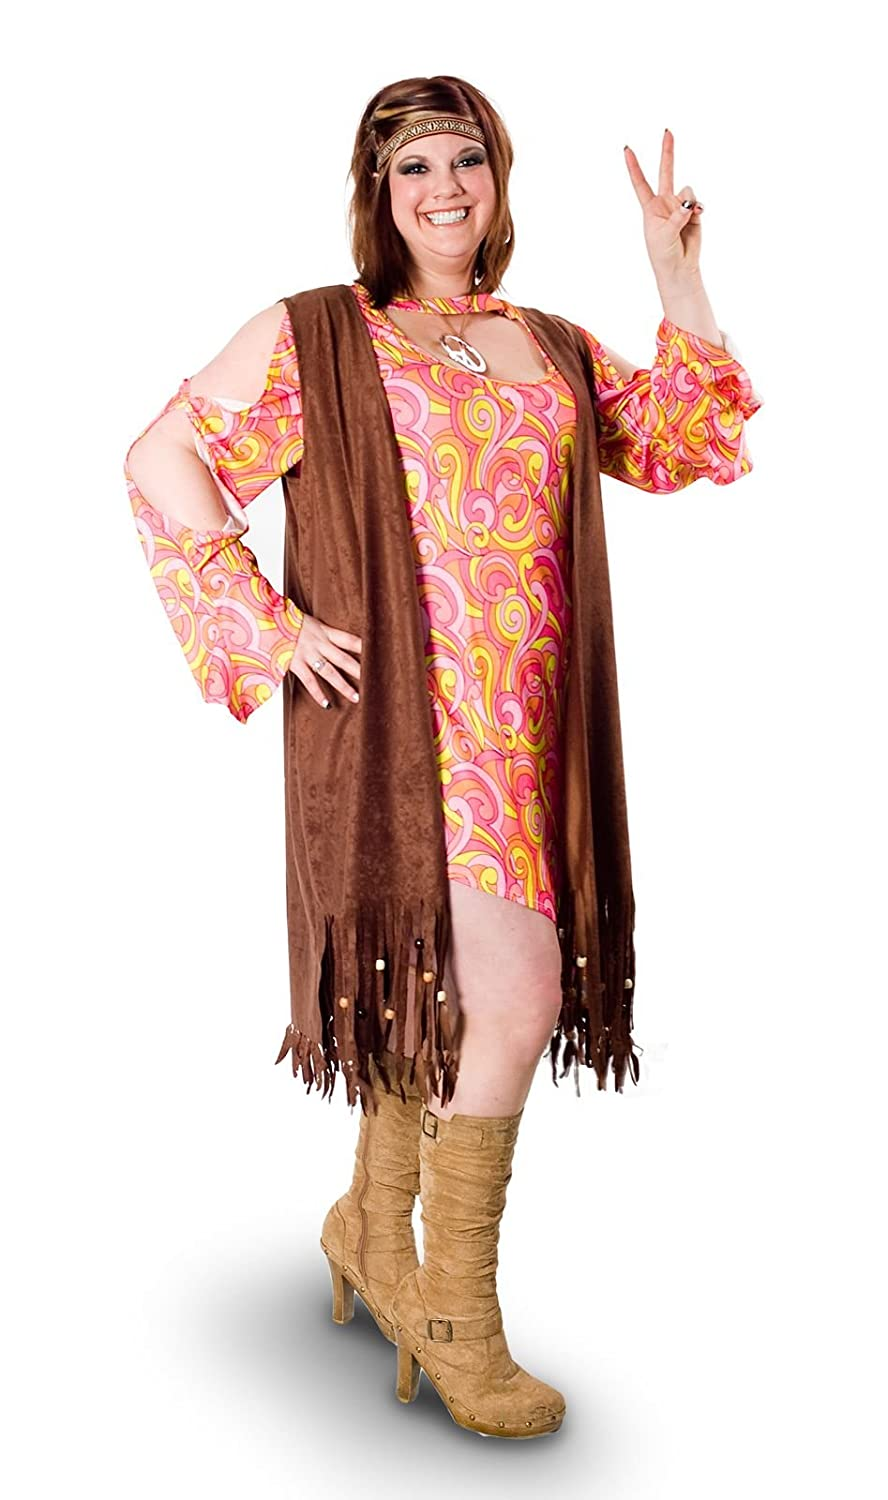 Hippie Costumes, Hippie Outfits Sunnywood Womens Plus-Size Lava Diva Funky Swirl Hippie Costume $42.58 AT vintagedancer.com